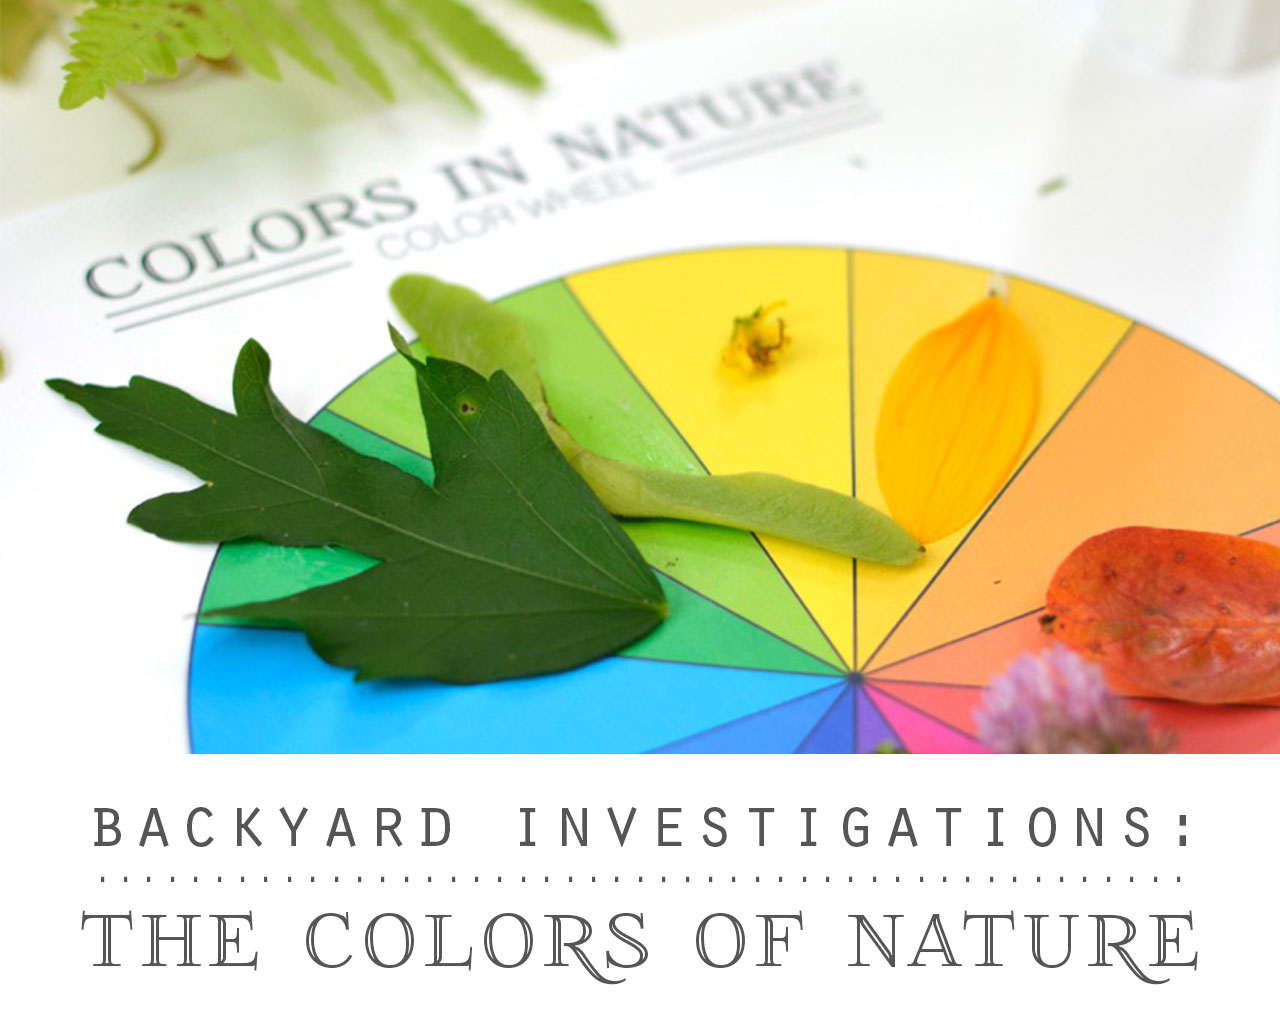 Backyard Investigations: The Colors of Nature